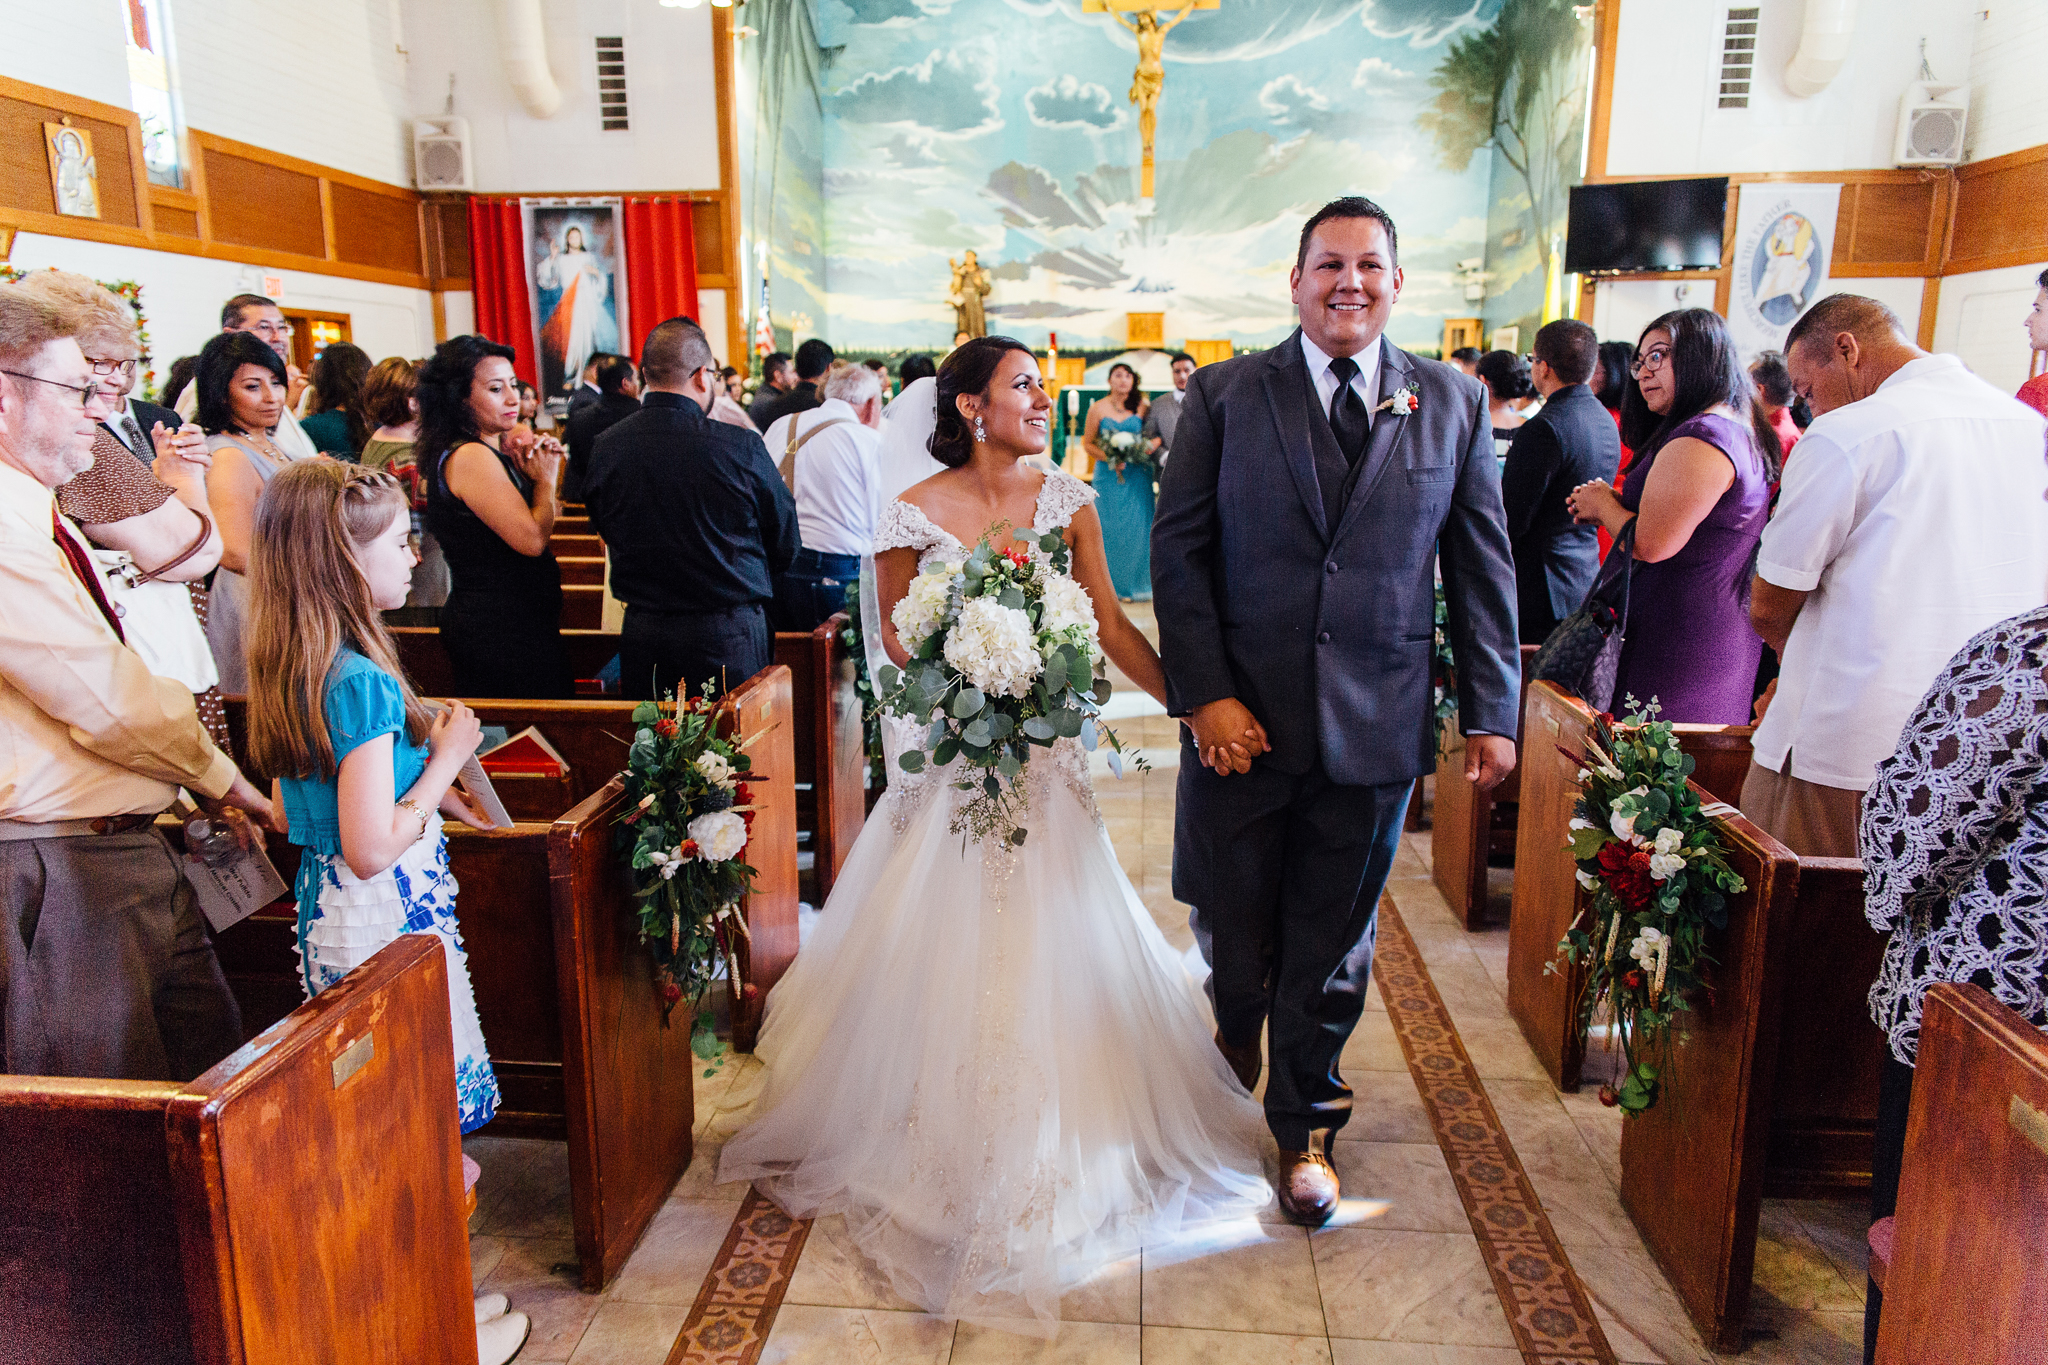 Wedding Photography - We understand that every wedding is unique and every couple will have their own wants and needs. Your wedding package should have exactly what you want in it no more no less. Contact us to see how we can help you have a photogenic wedding.